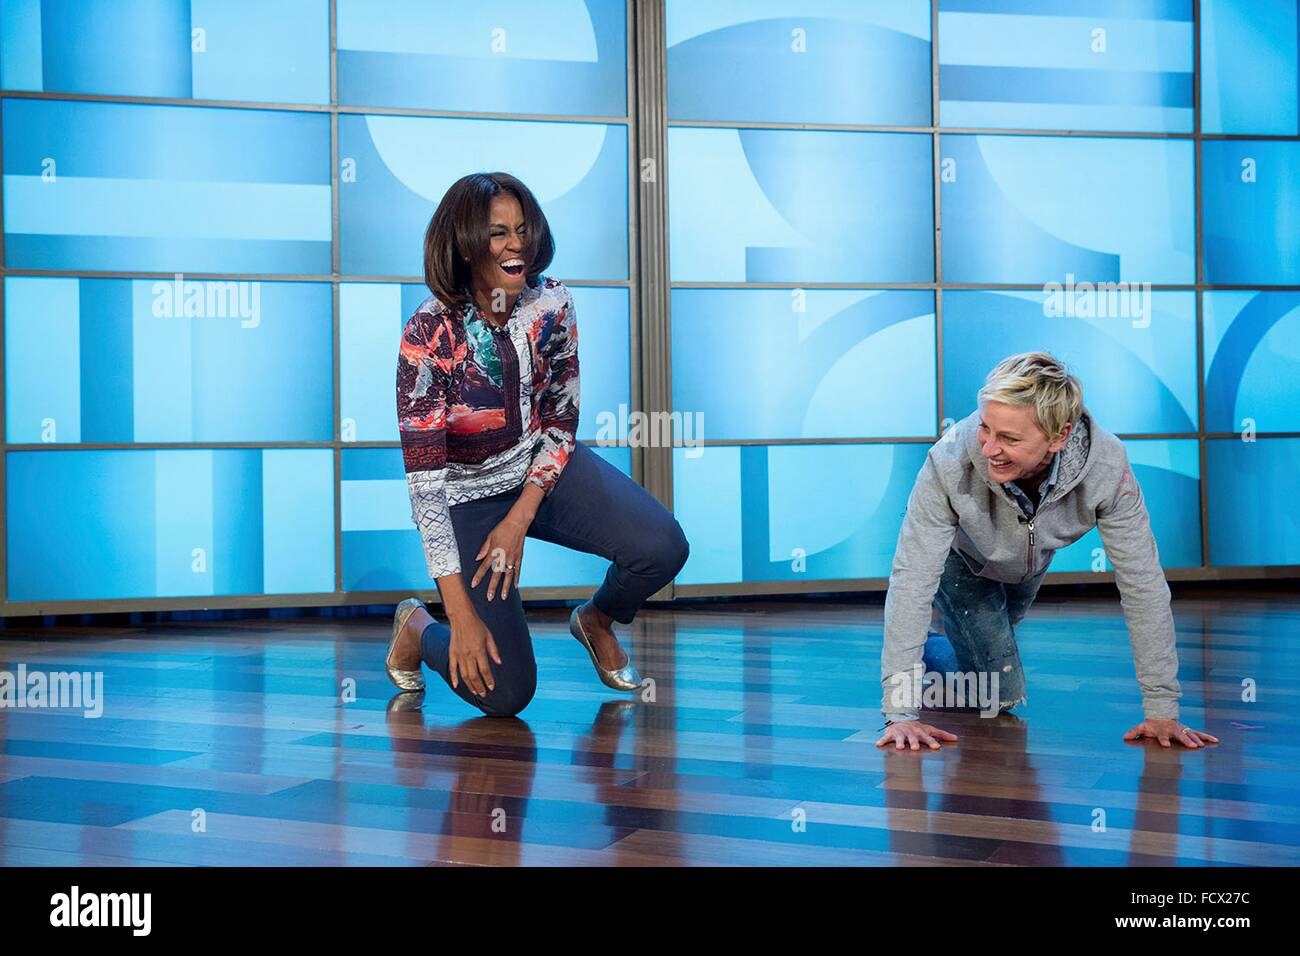 first lady michelle obama and ellen degeneres laugh during rehearsal stock photo royalty free. Black Bedroom Furniture Sets. Home Design Ideas